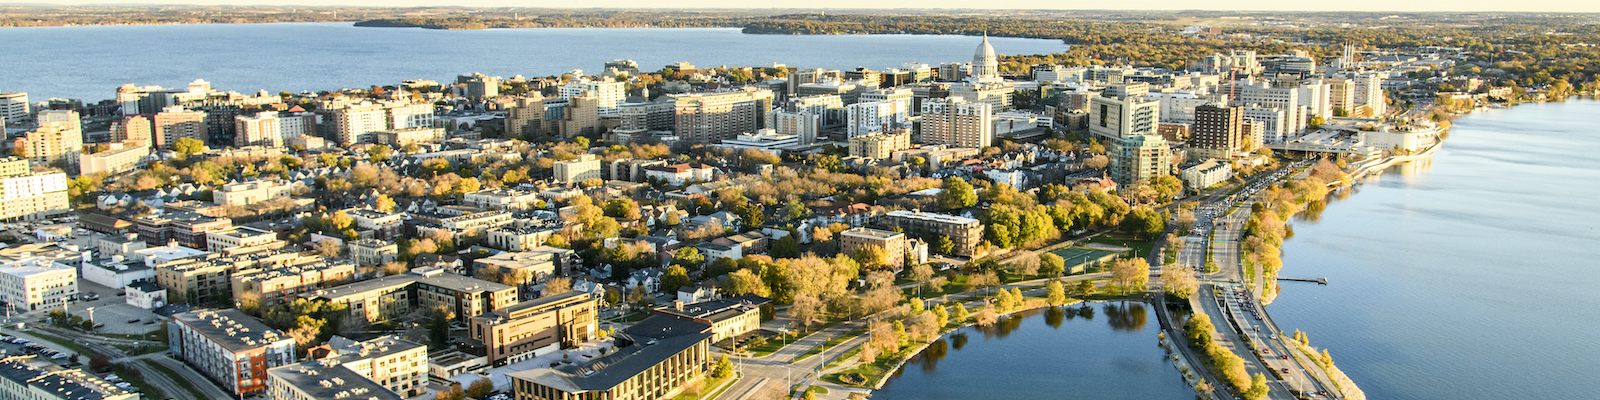 Aerial view of the Madison Isthmus with the capital